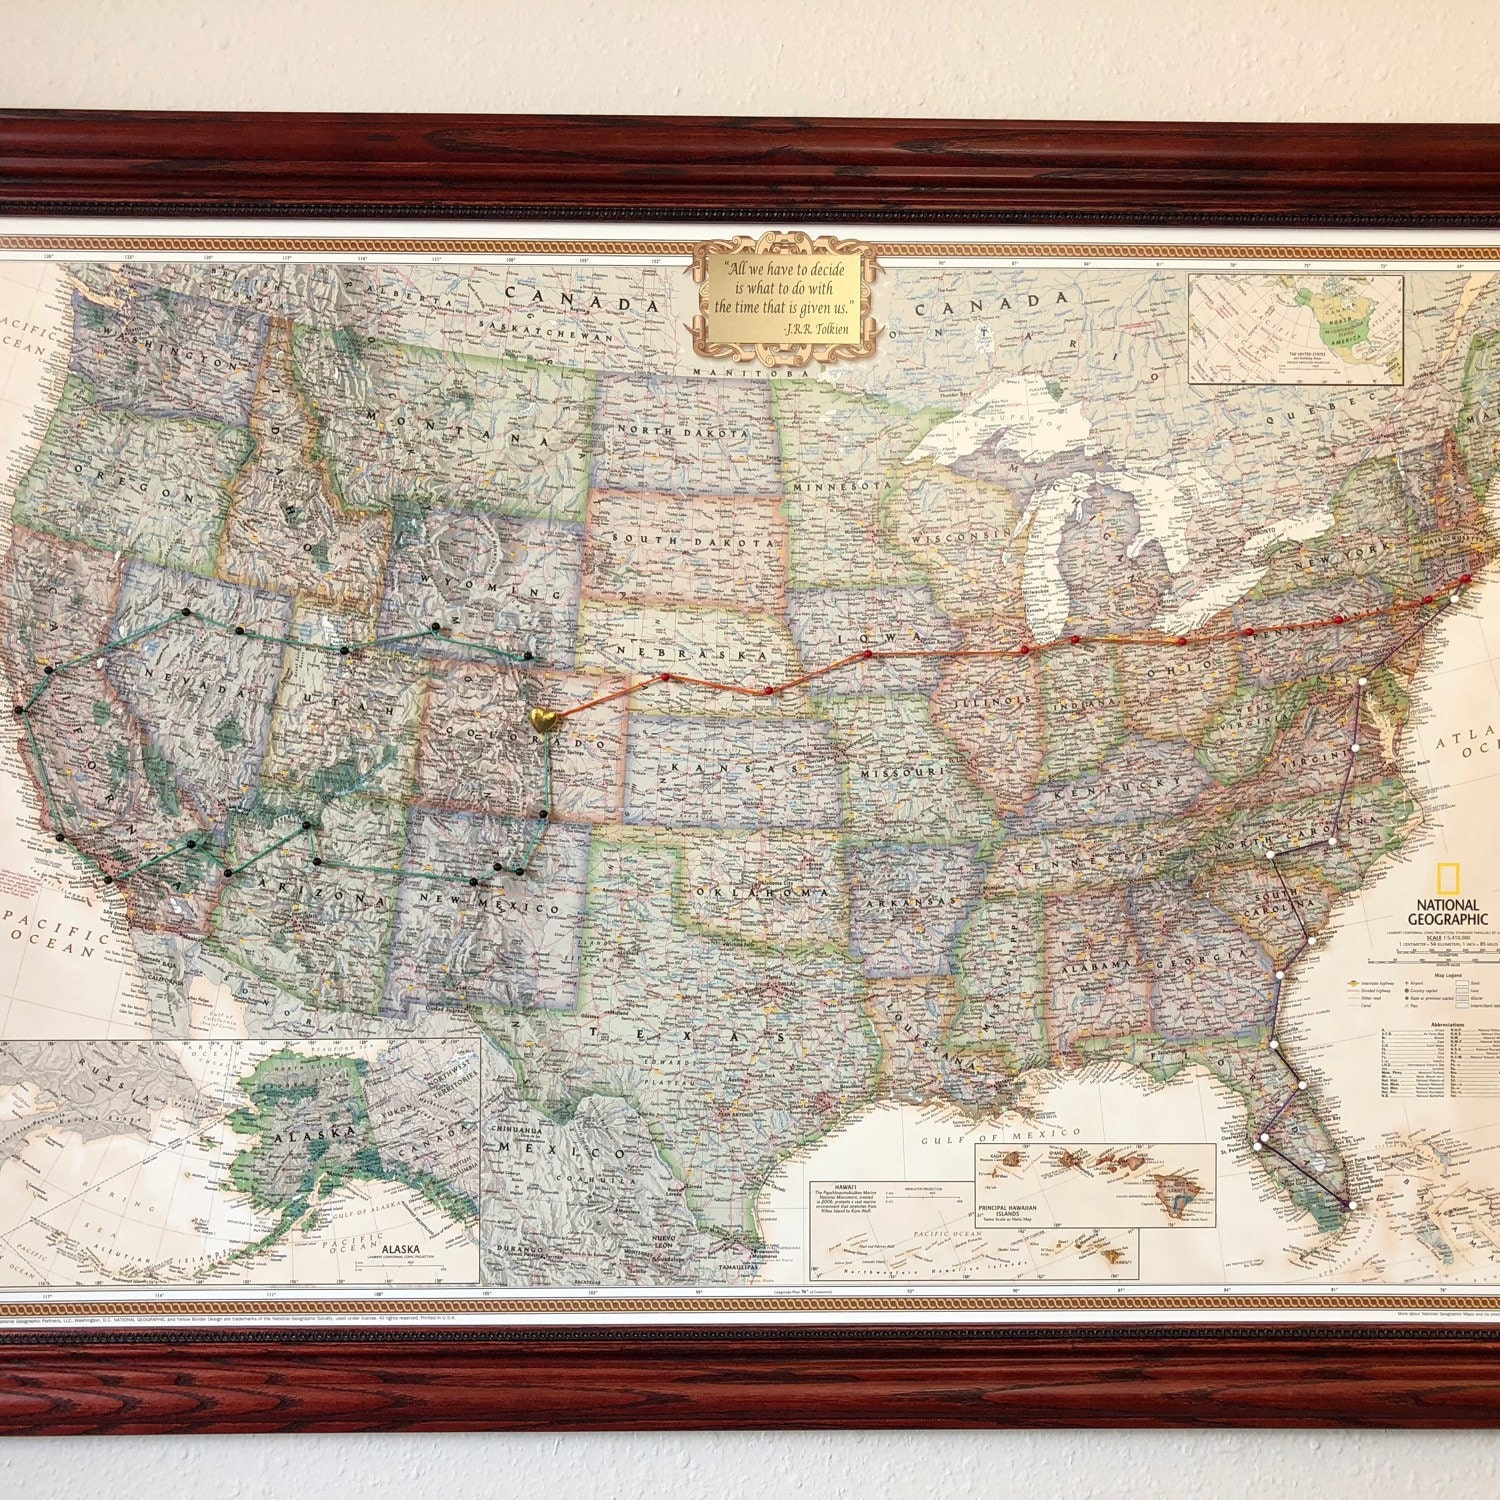 Personalized Executive US Travel Map with Pins and Frame | Etsy